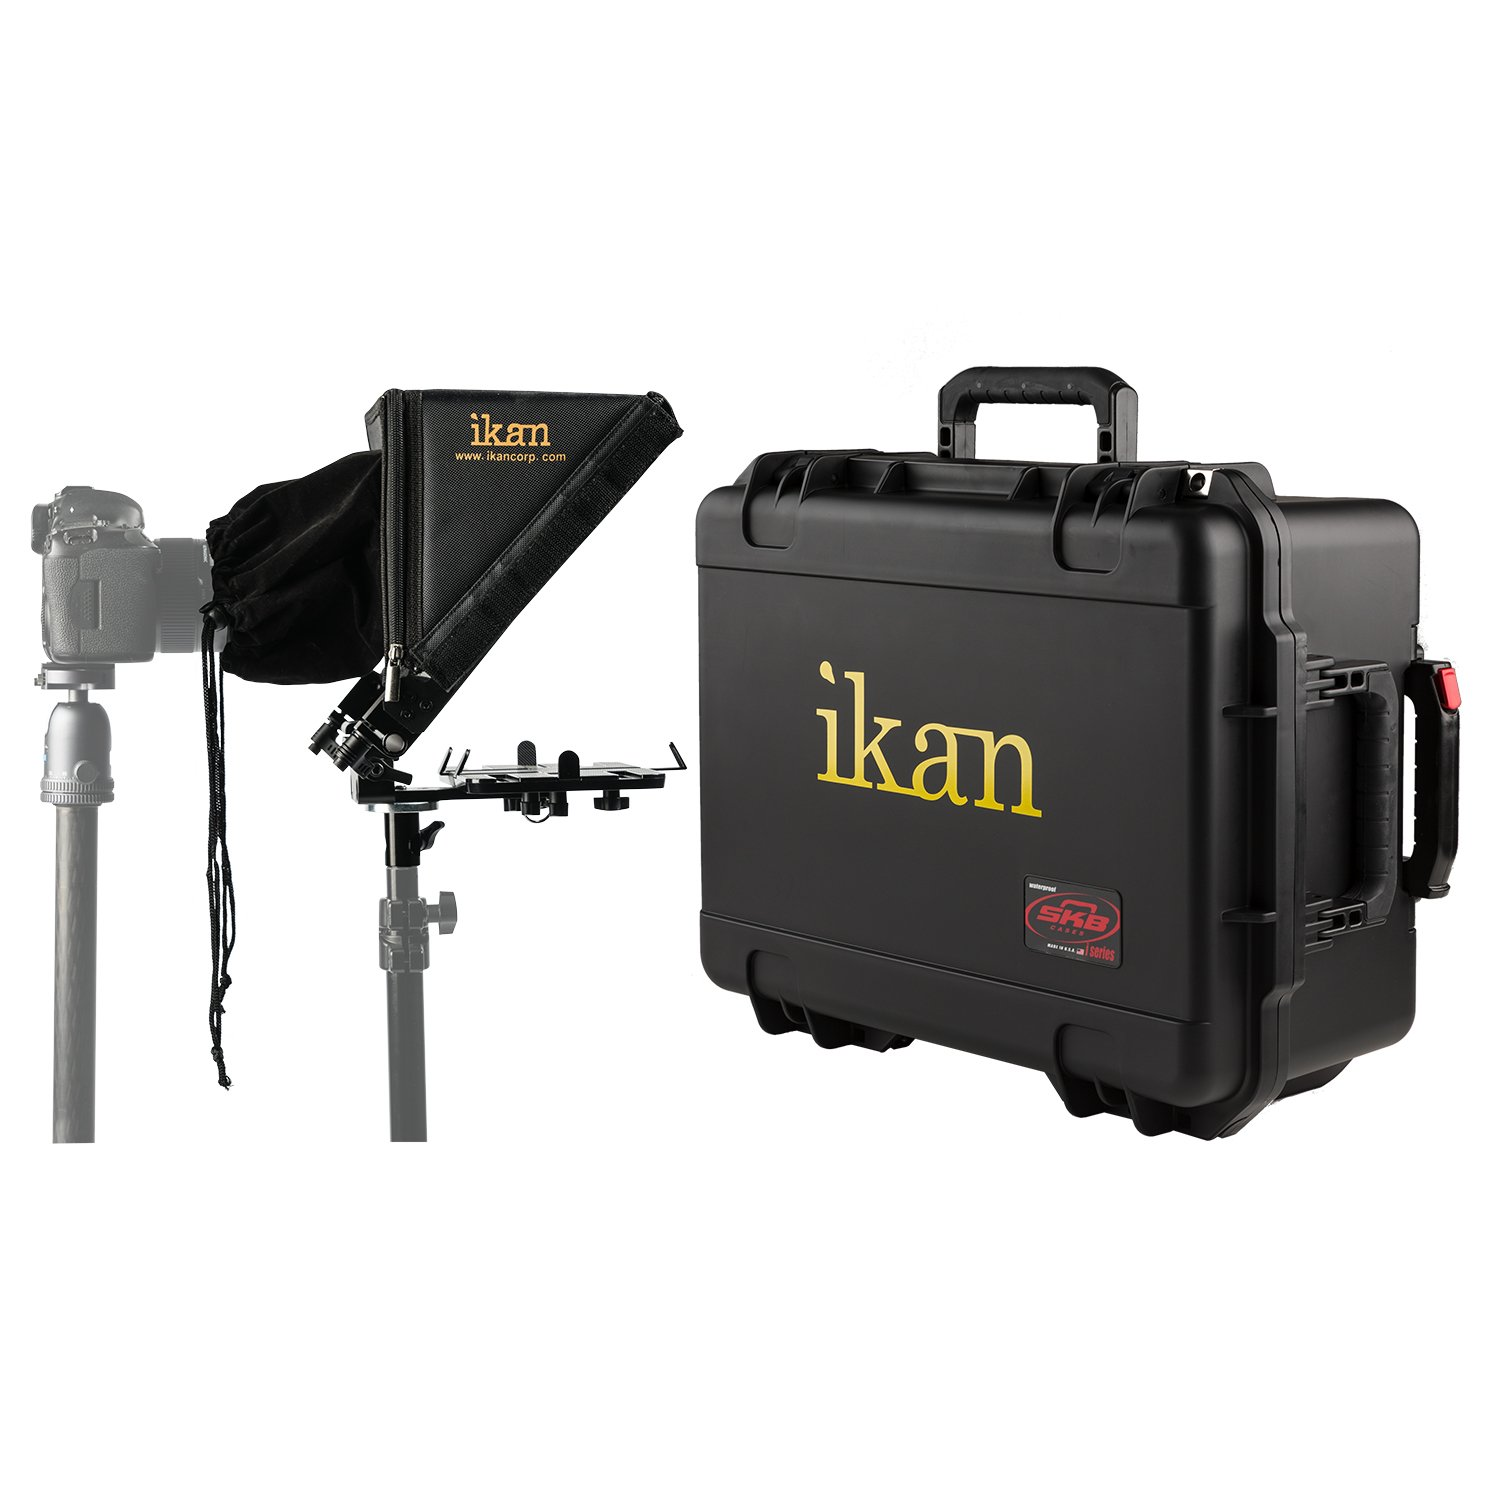 Ikan 22-inch Elite Tablet Teleprompter for Light Stands w/Rolling Case, Supports iPad, Android, and Windows Tablets, Foldable Glass Frame (PT-Elite-LS-TK) - Black by Ikan